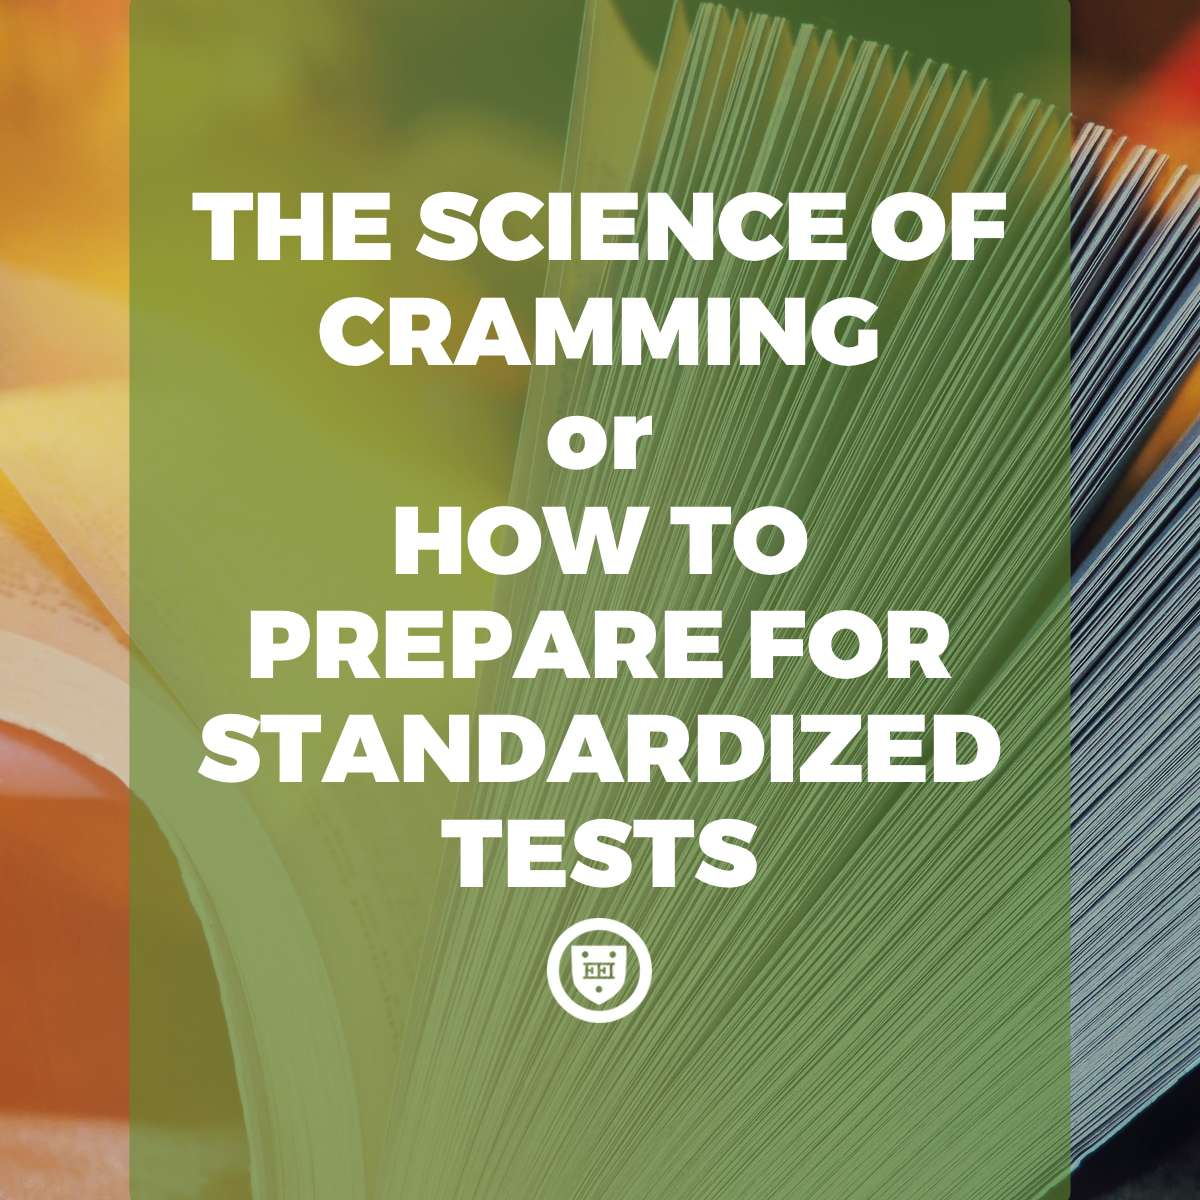 The Science of Cramming, or How to Prepare for Standardized Tests